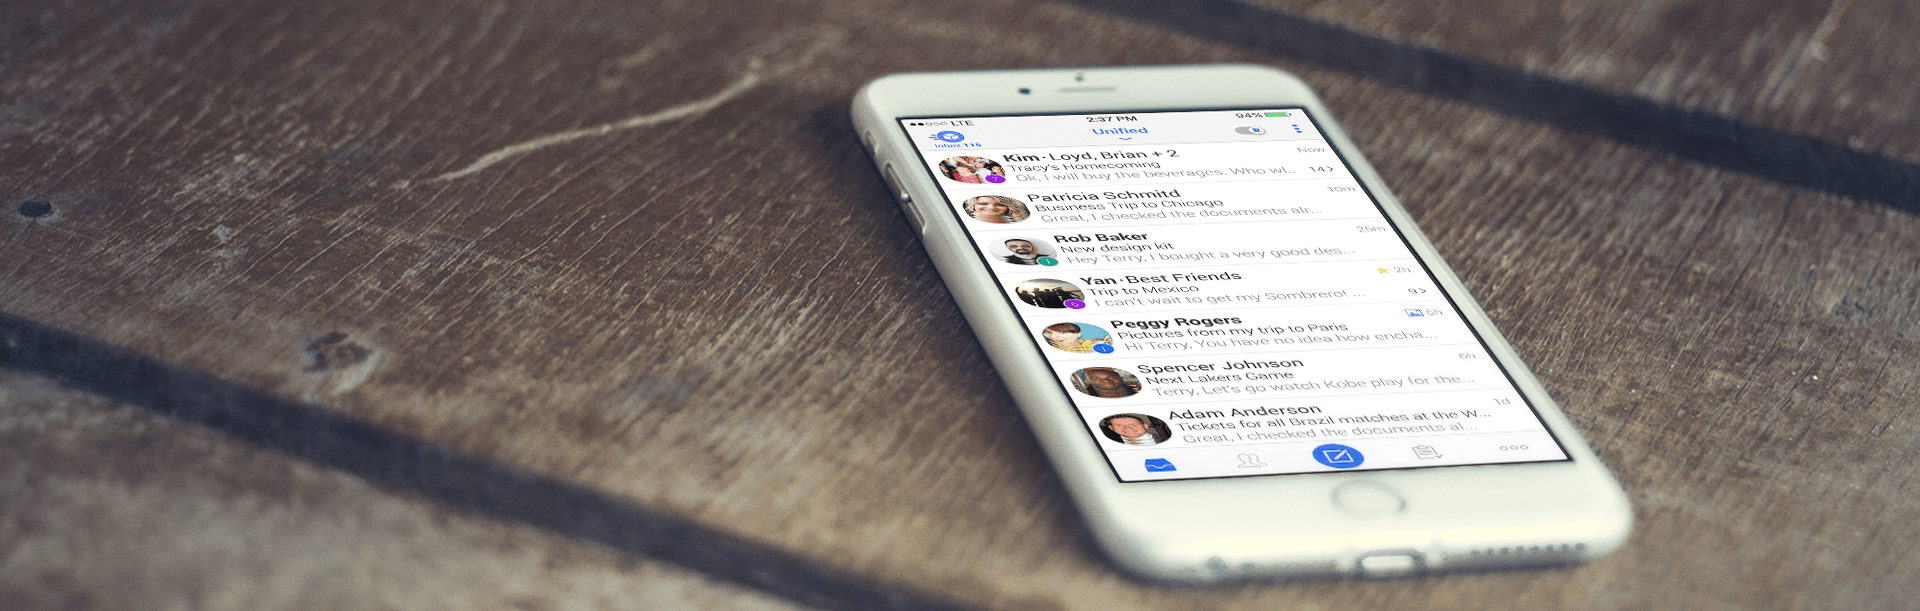 At the office, at home, or at the gym; your free email app